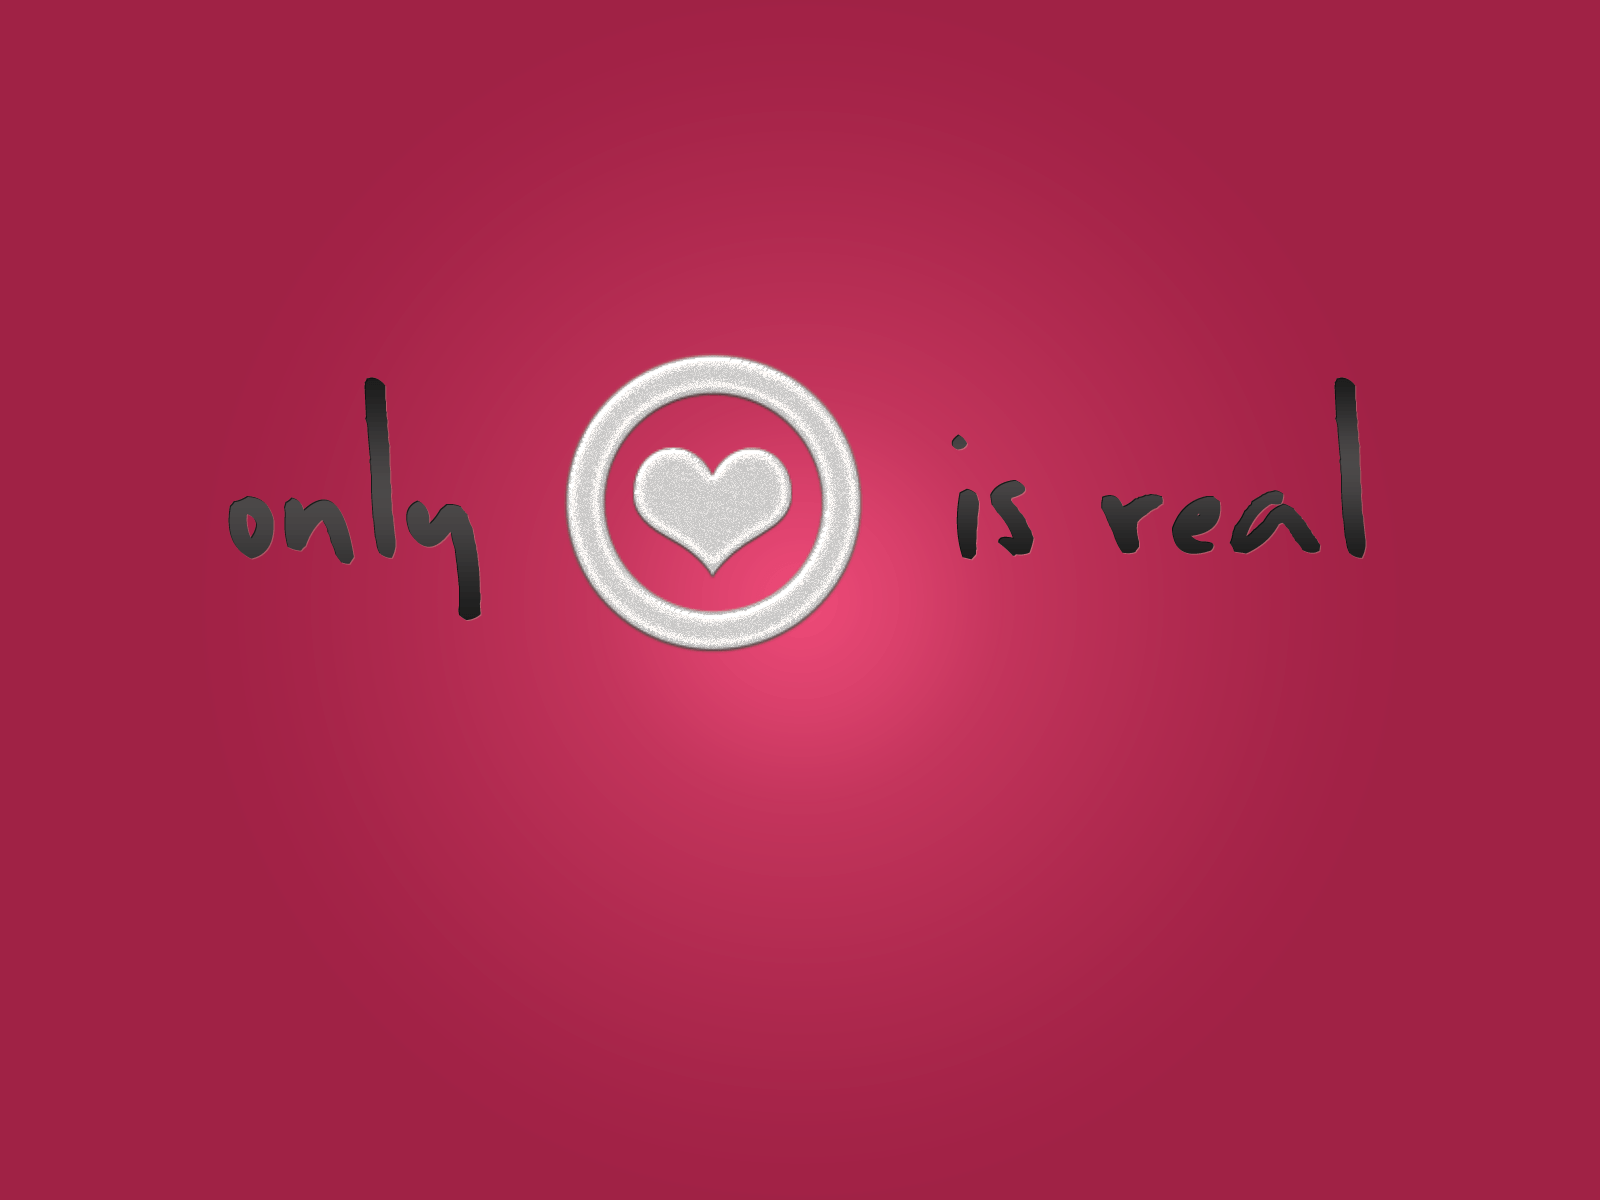 Real Love Images Wallpaper : Real Love Wallpapers - Wallpaper cave